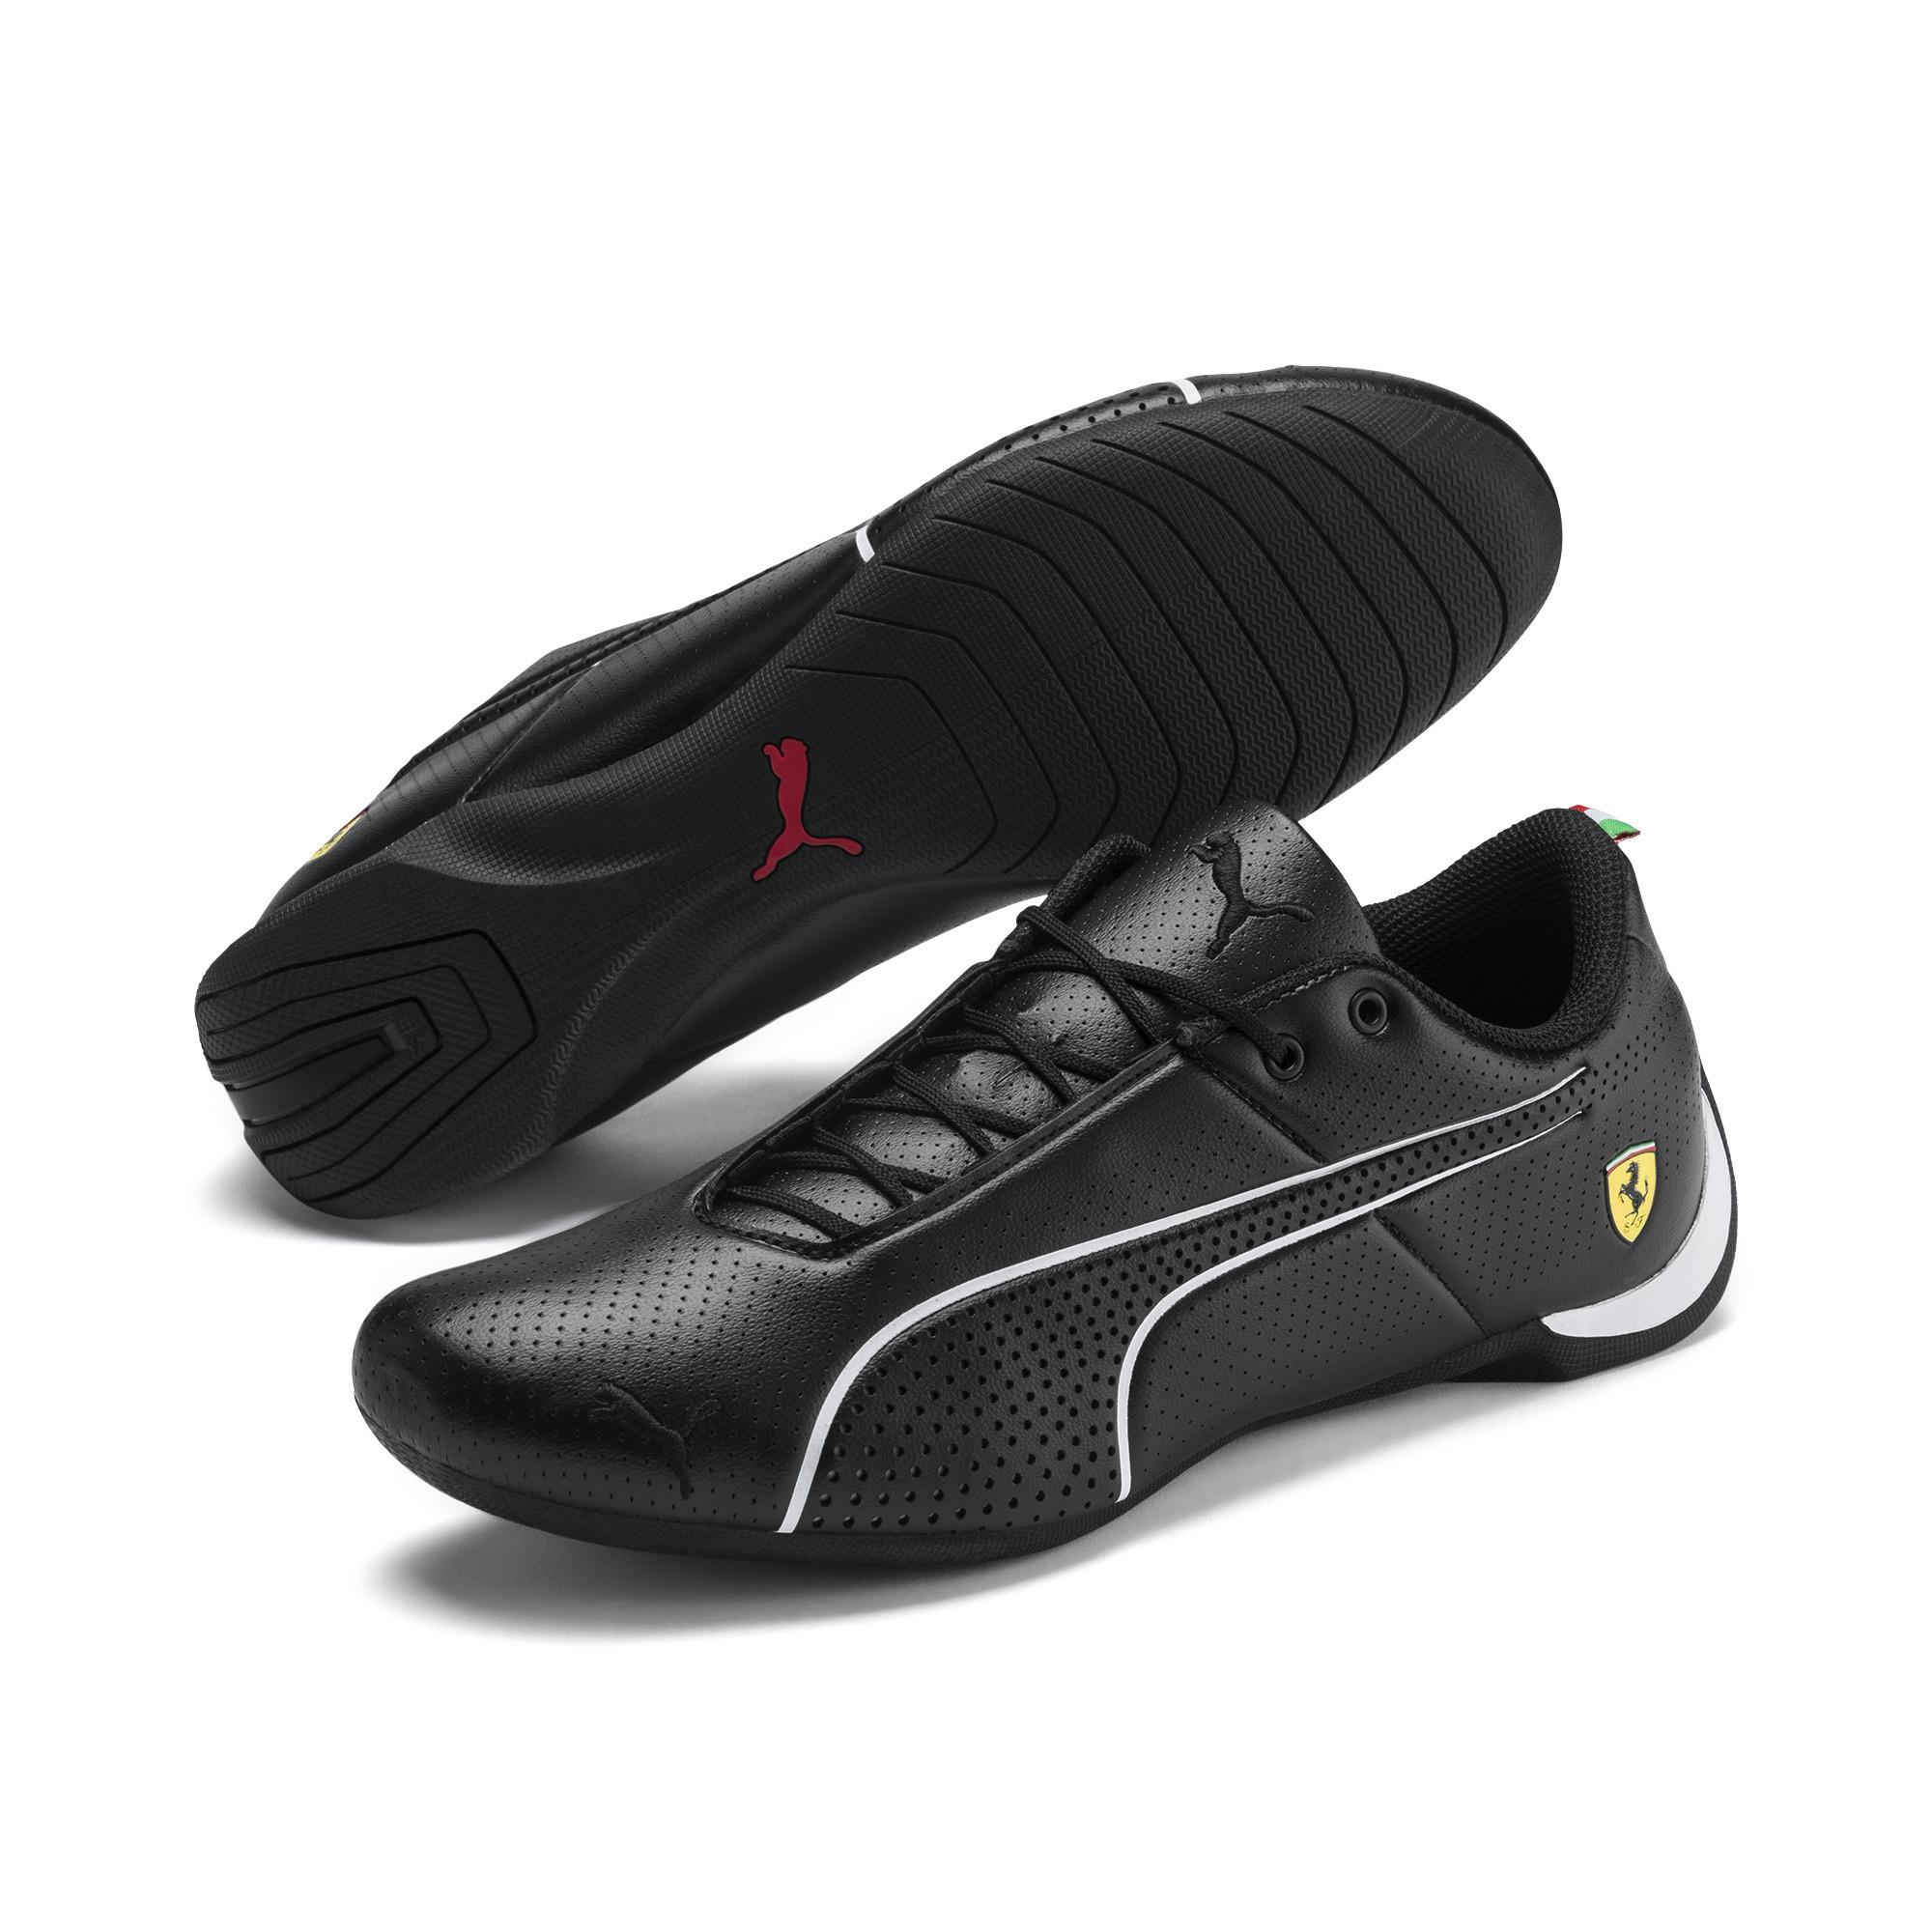 172d8299a73e PUMA - Black Scuderia Ferrari Future Cat Ultra Sneakers for Men - Lyst.  View fullscreen